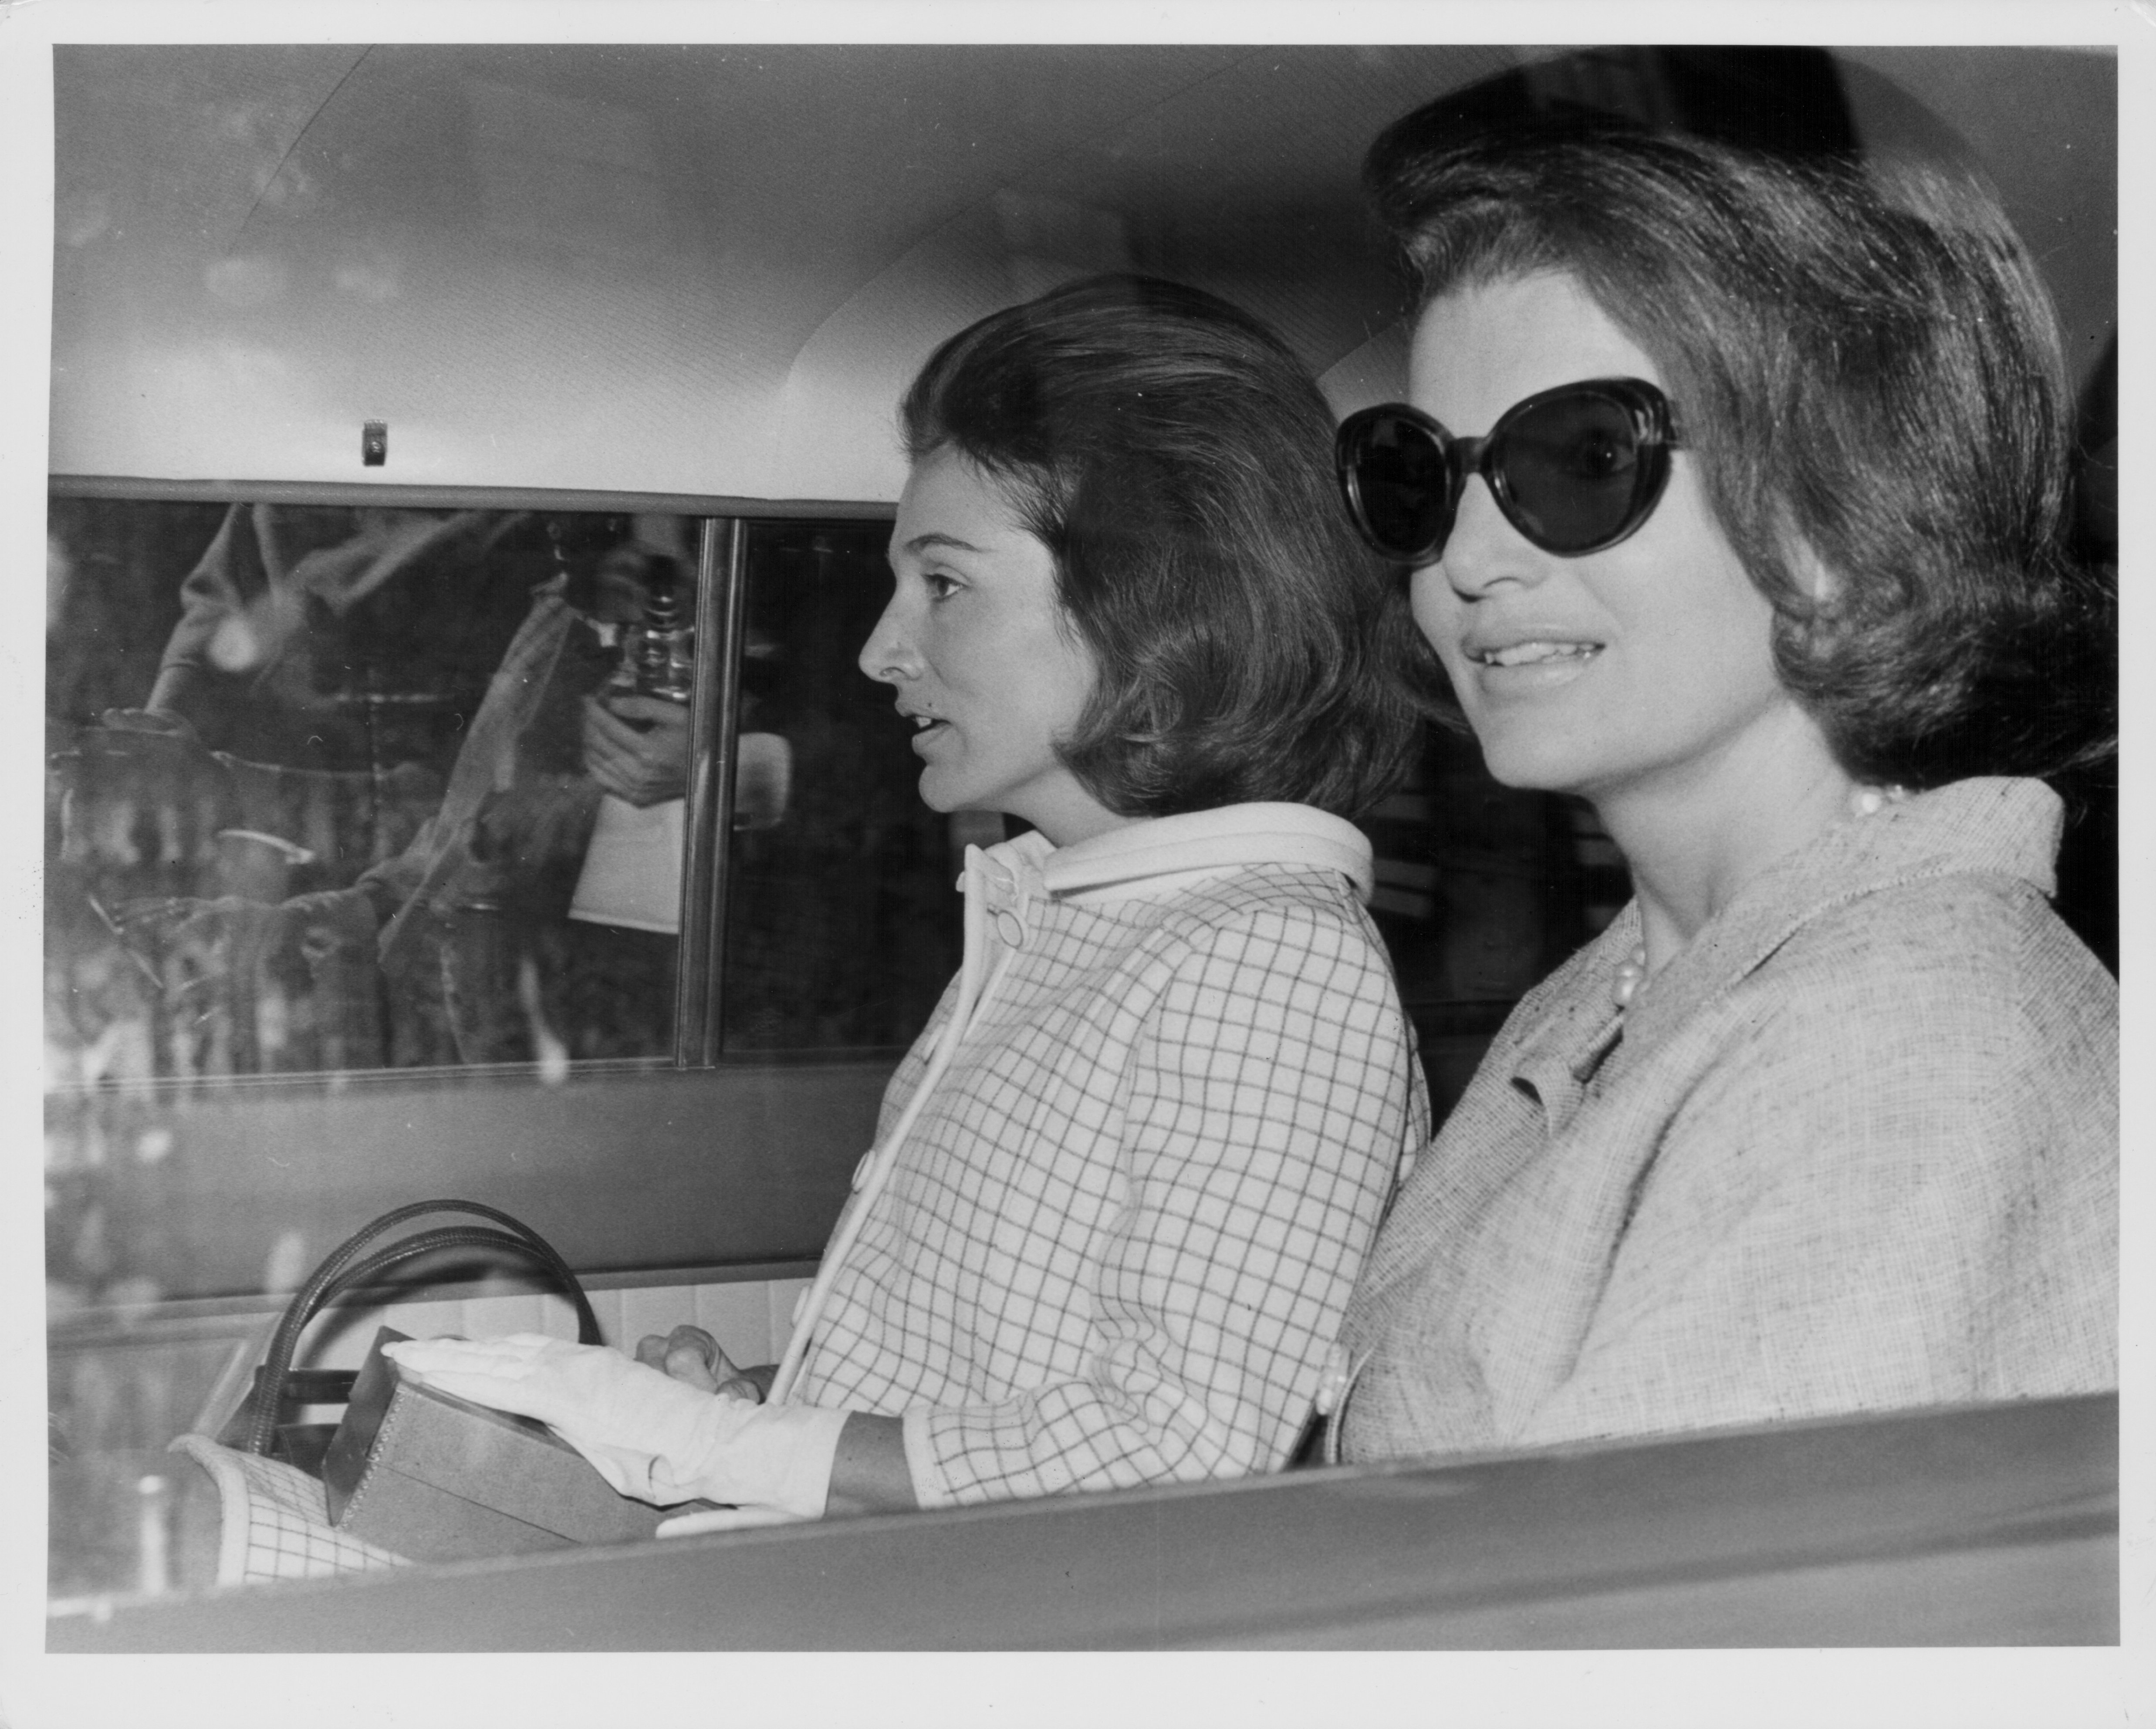 Lee Radziwill in a car with her sister Jaqueline Kennedy | Photo: Getty Images